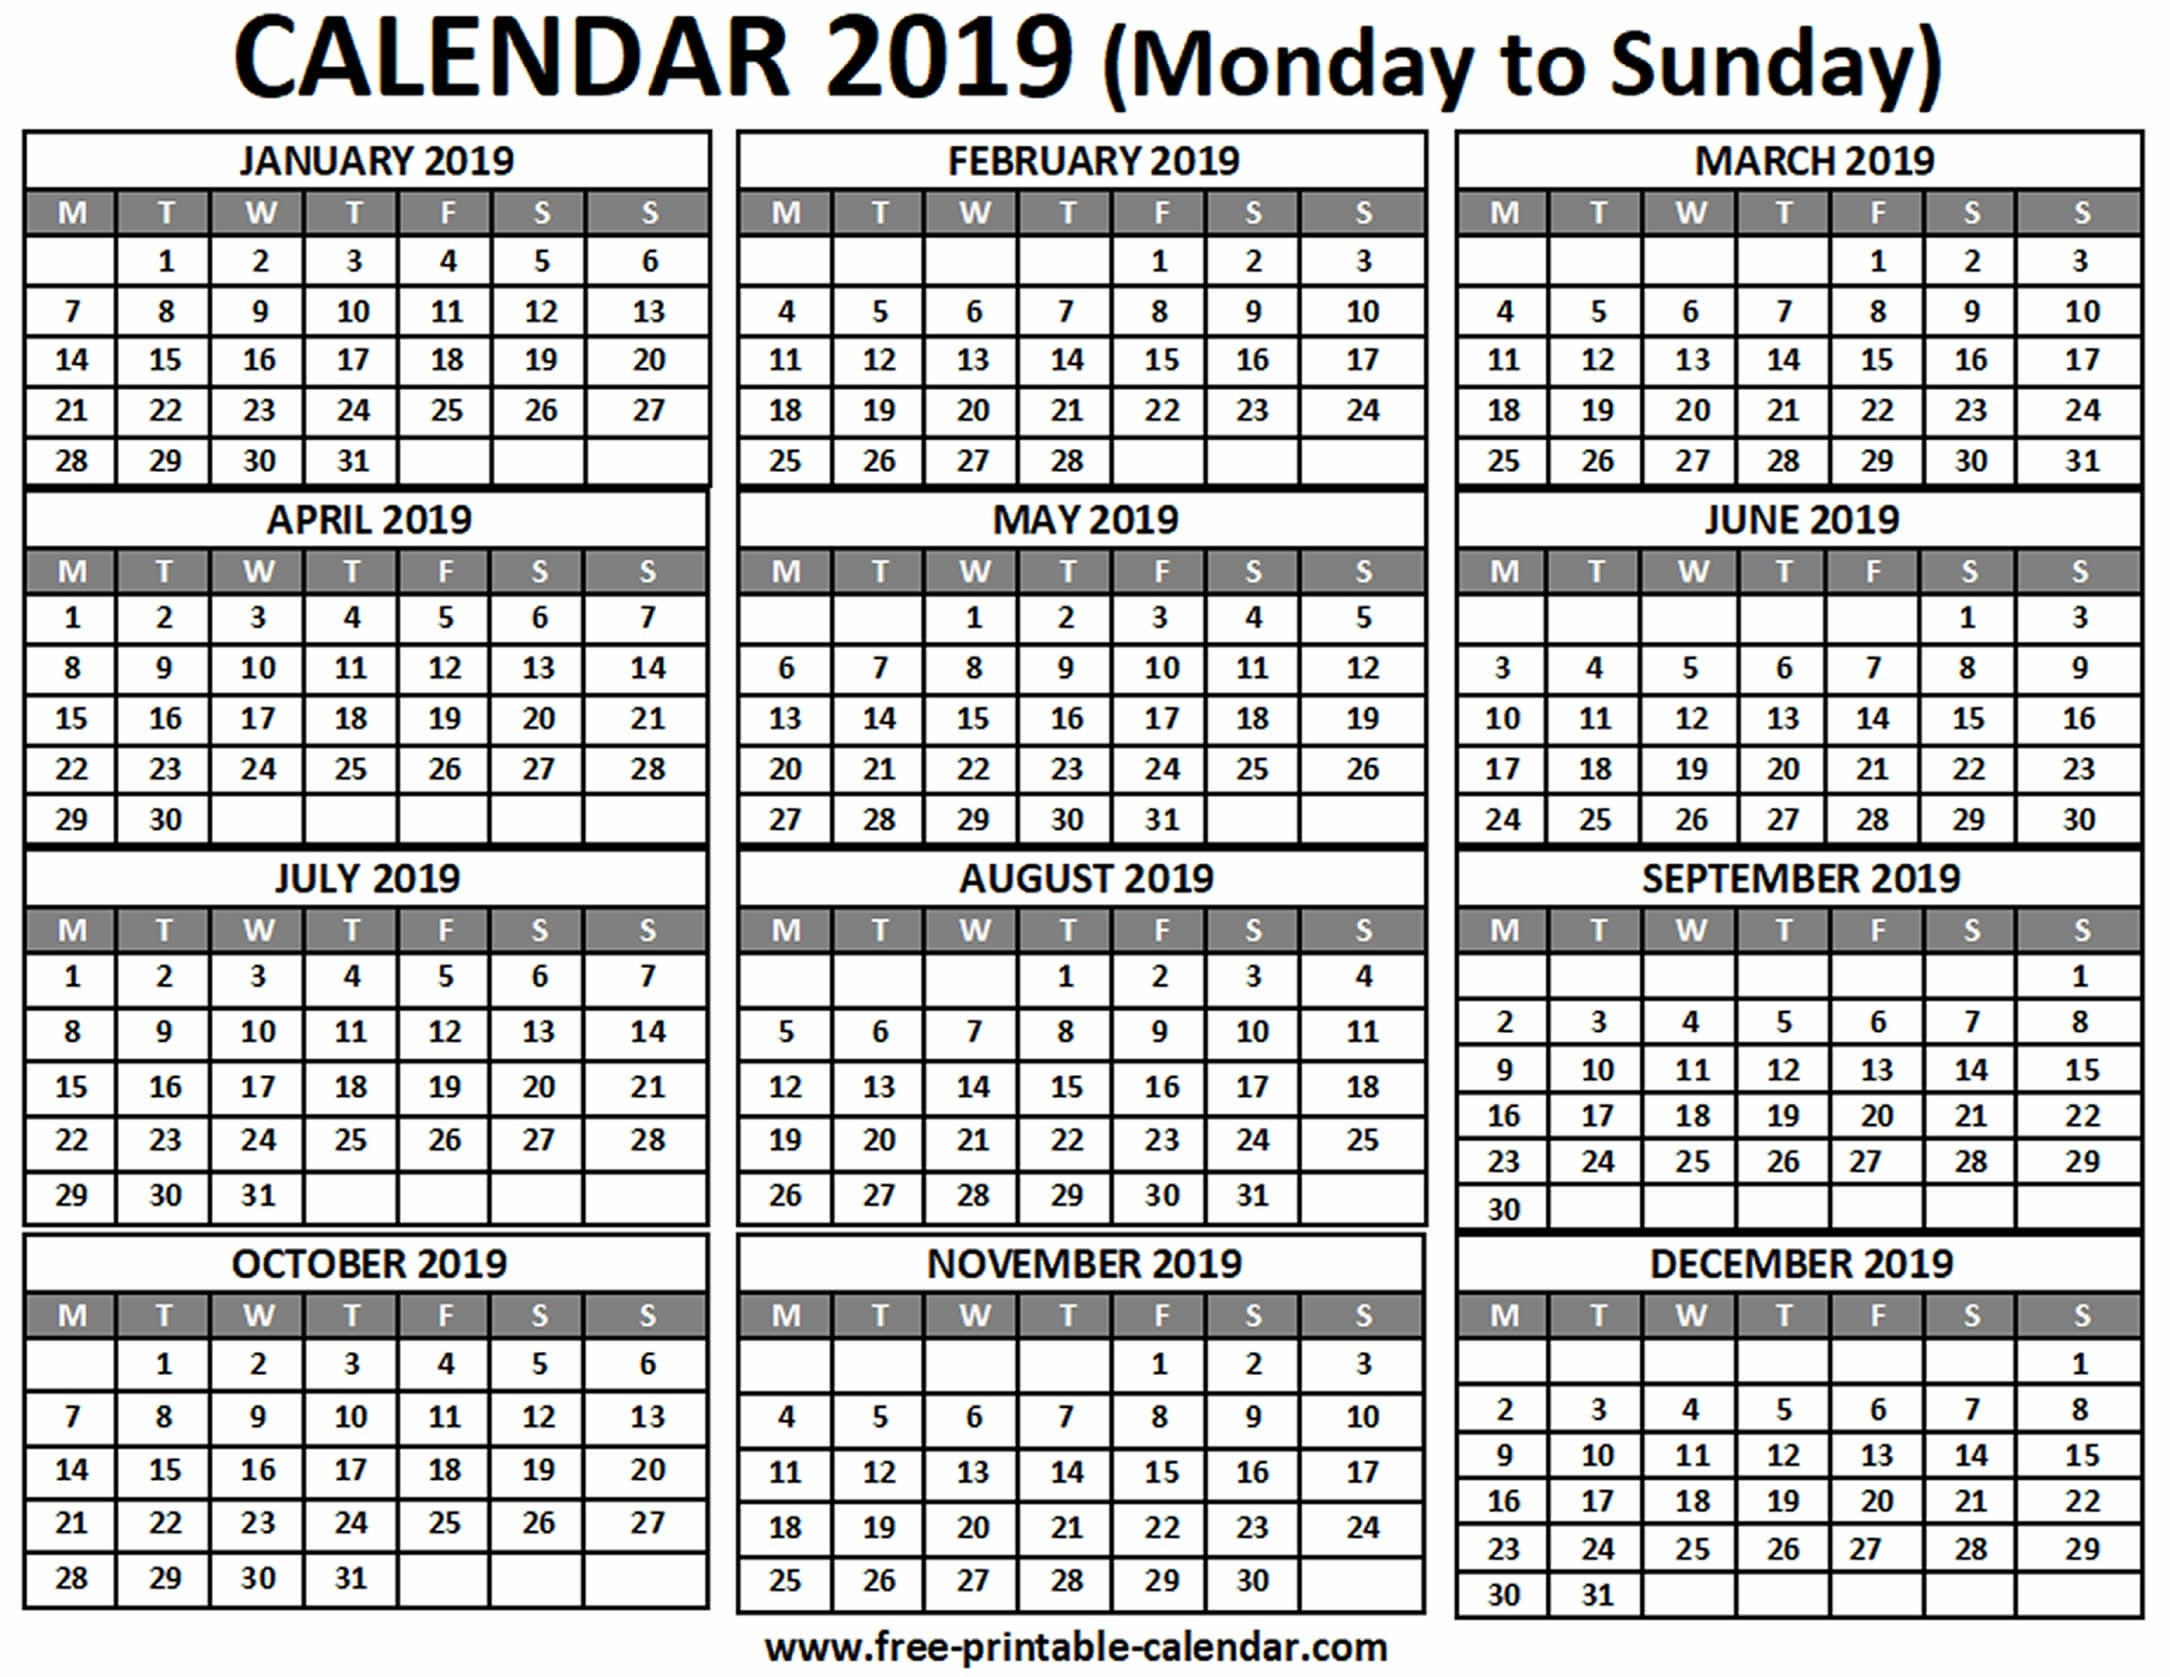 2019 Calendar - Free-Printable-Calendar-A4 Monthly Calendar Template Print Over 2 Pages Monday Start Free